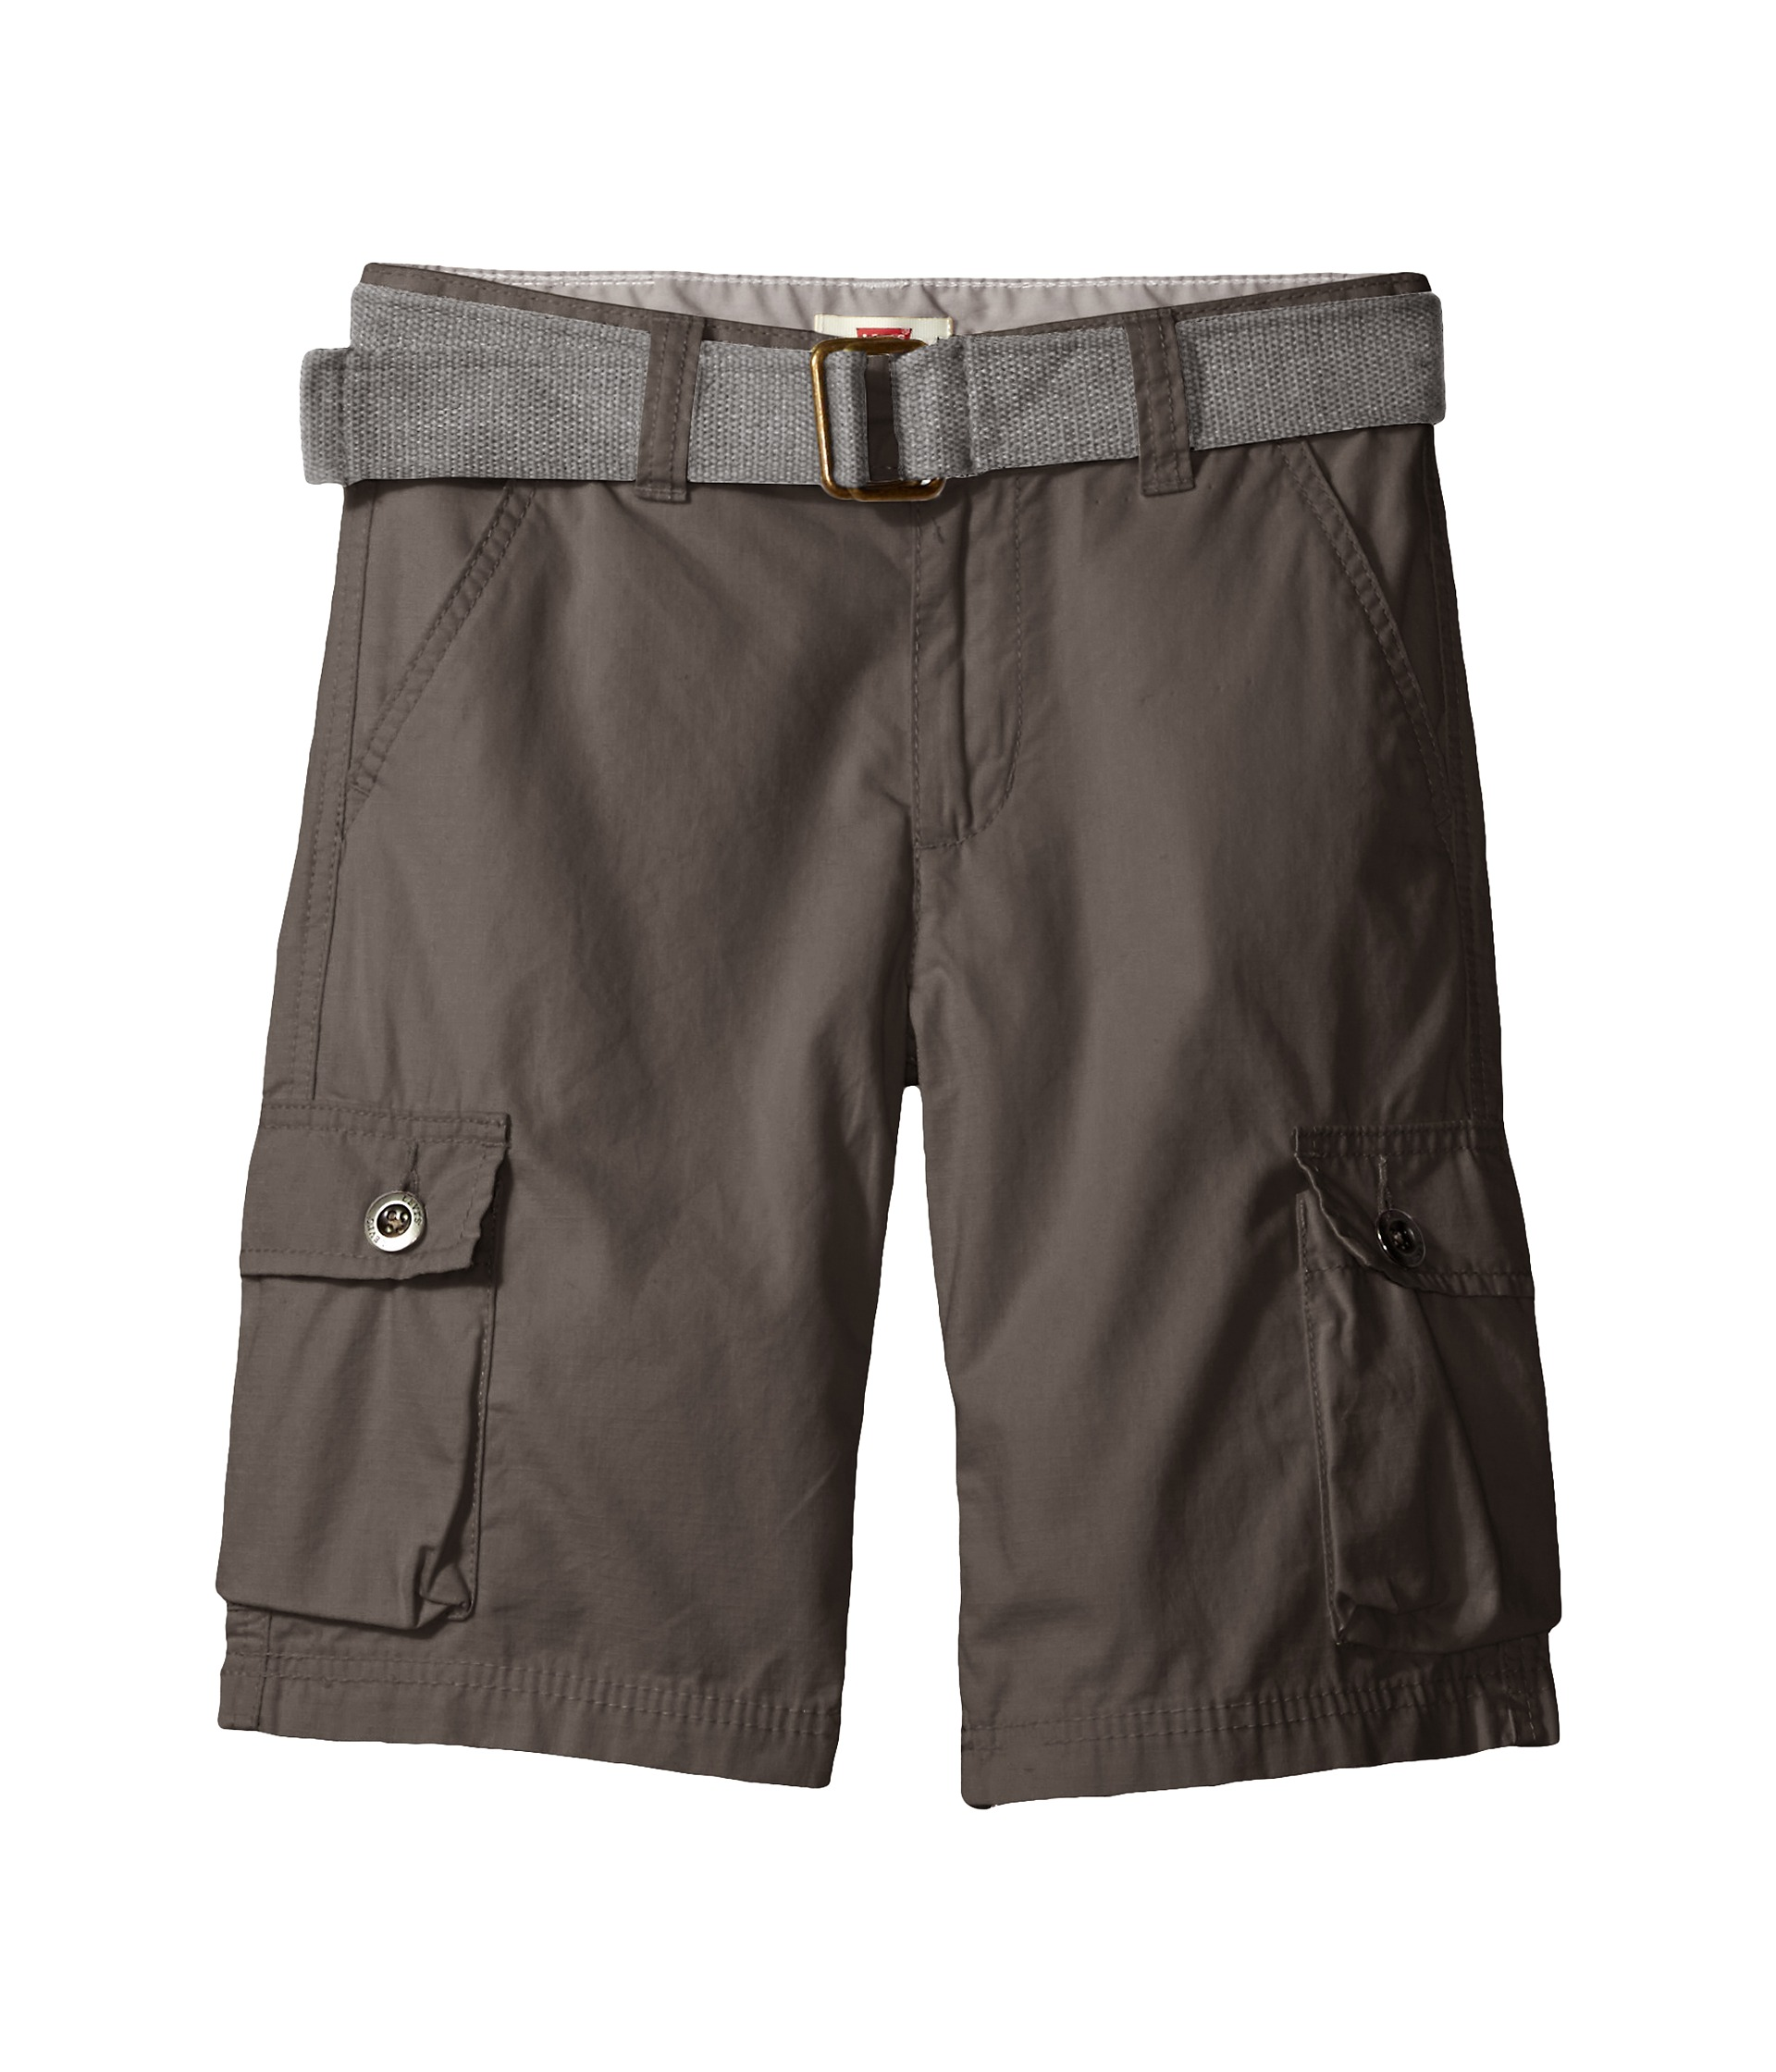 Cargo shorts with stretchy twill for extra comfort and lots of pockets! Two front pockets, two side button pockets, two back button pockets, logo patch on left leg. Imported.